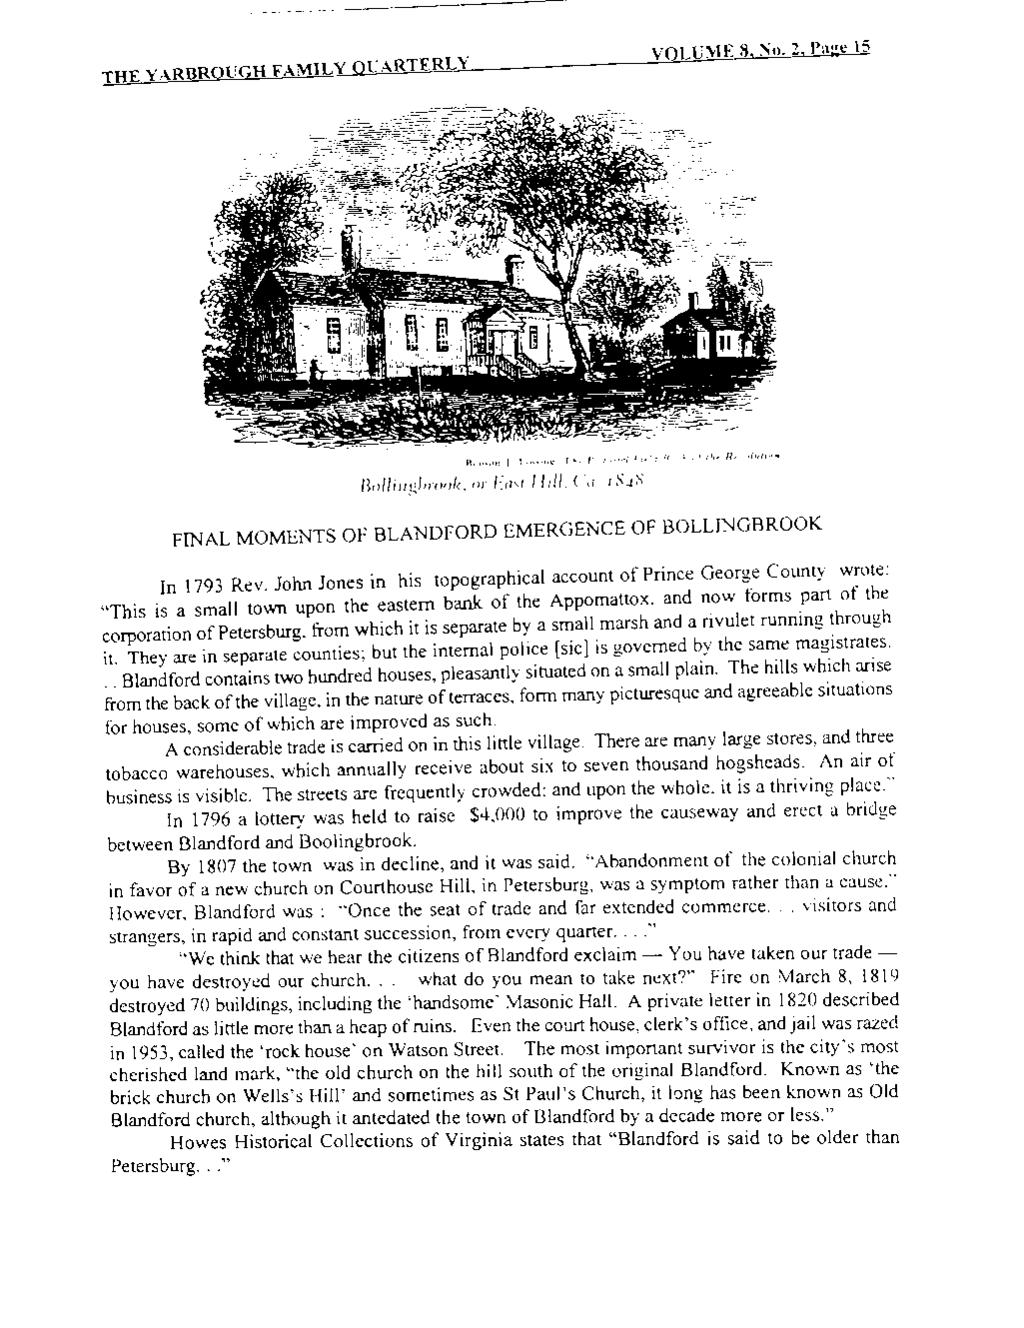 ----------------------- THE YARBROUGH FAMILY QUARTERLY VOLUME 8, No. 2, Page 15 FINAL MOMENTS OF BLANDFORD EMERGENCE OF BOLLINGBROOK In 1793 Rev.